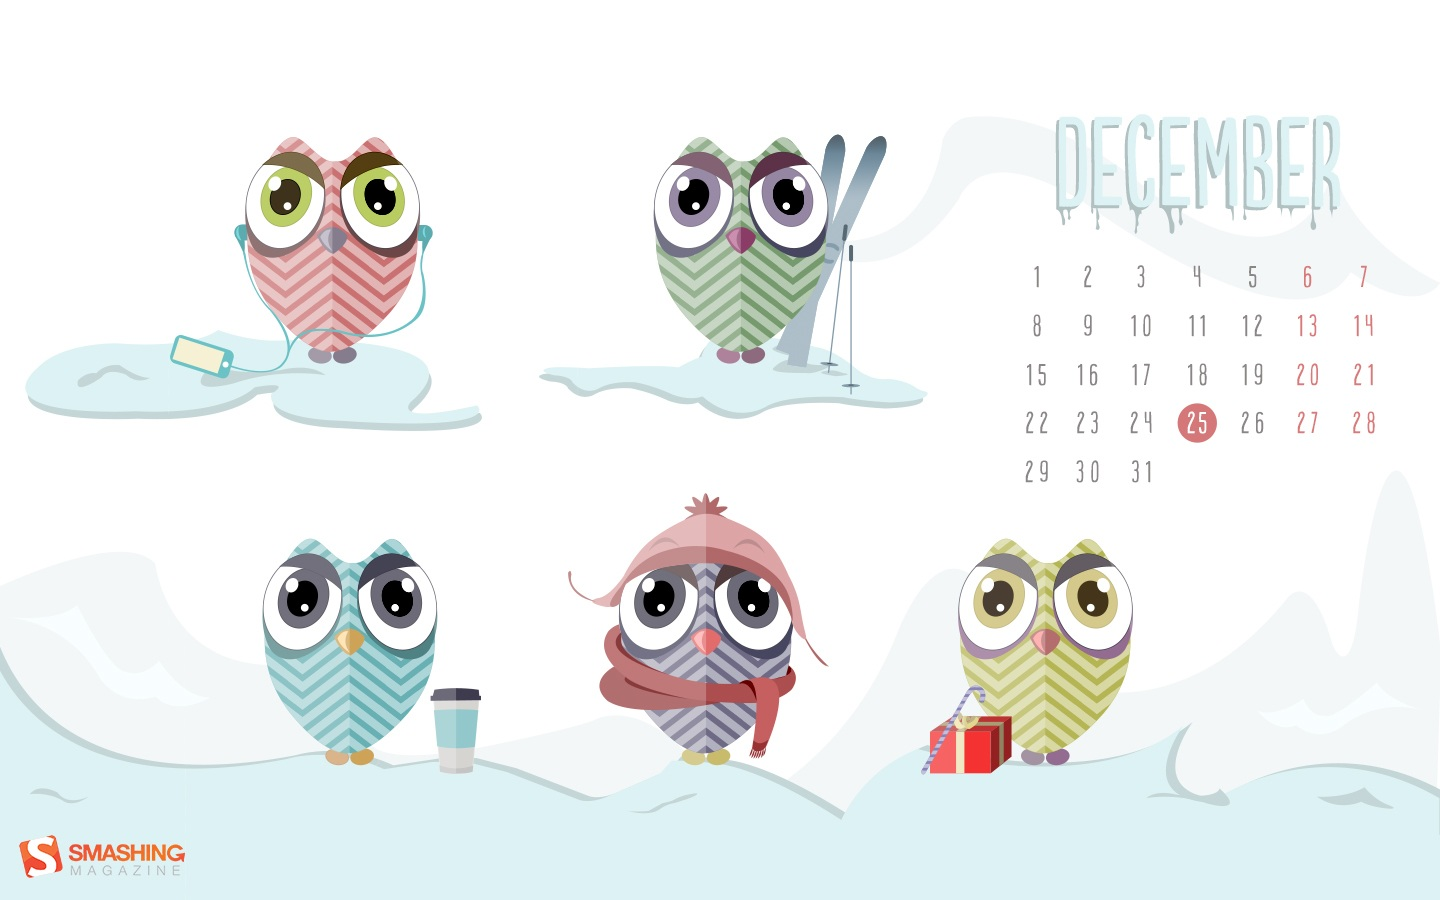 In January Calendar Wallpaper 51172